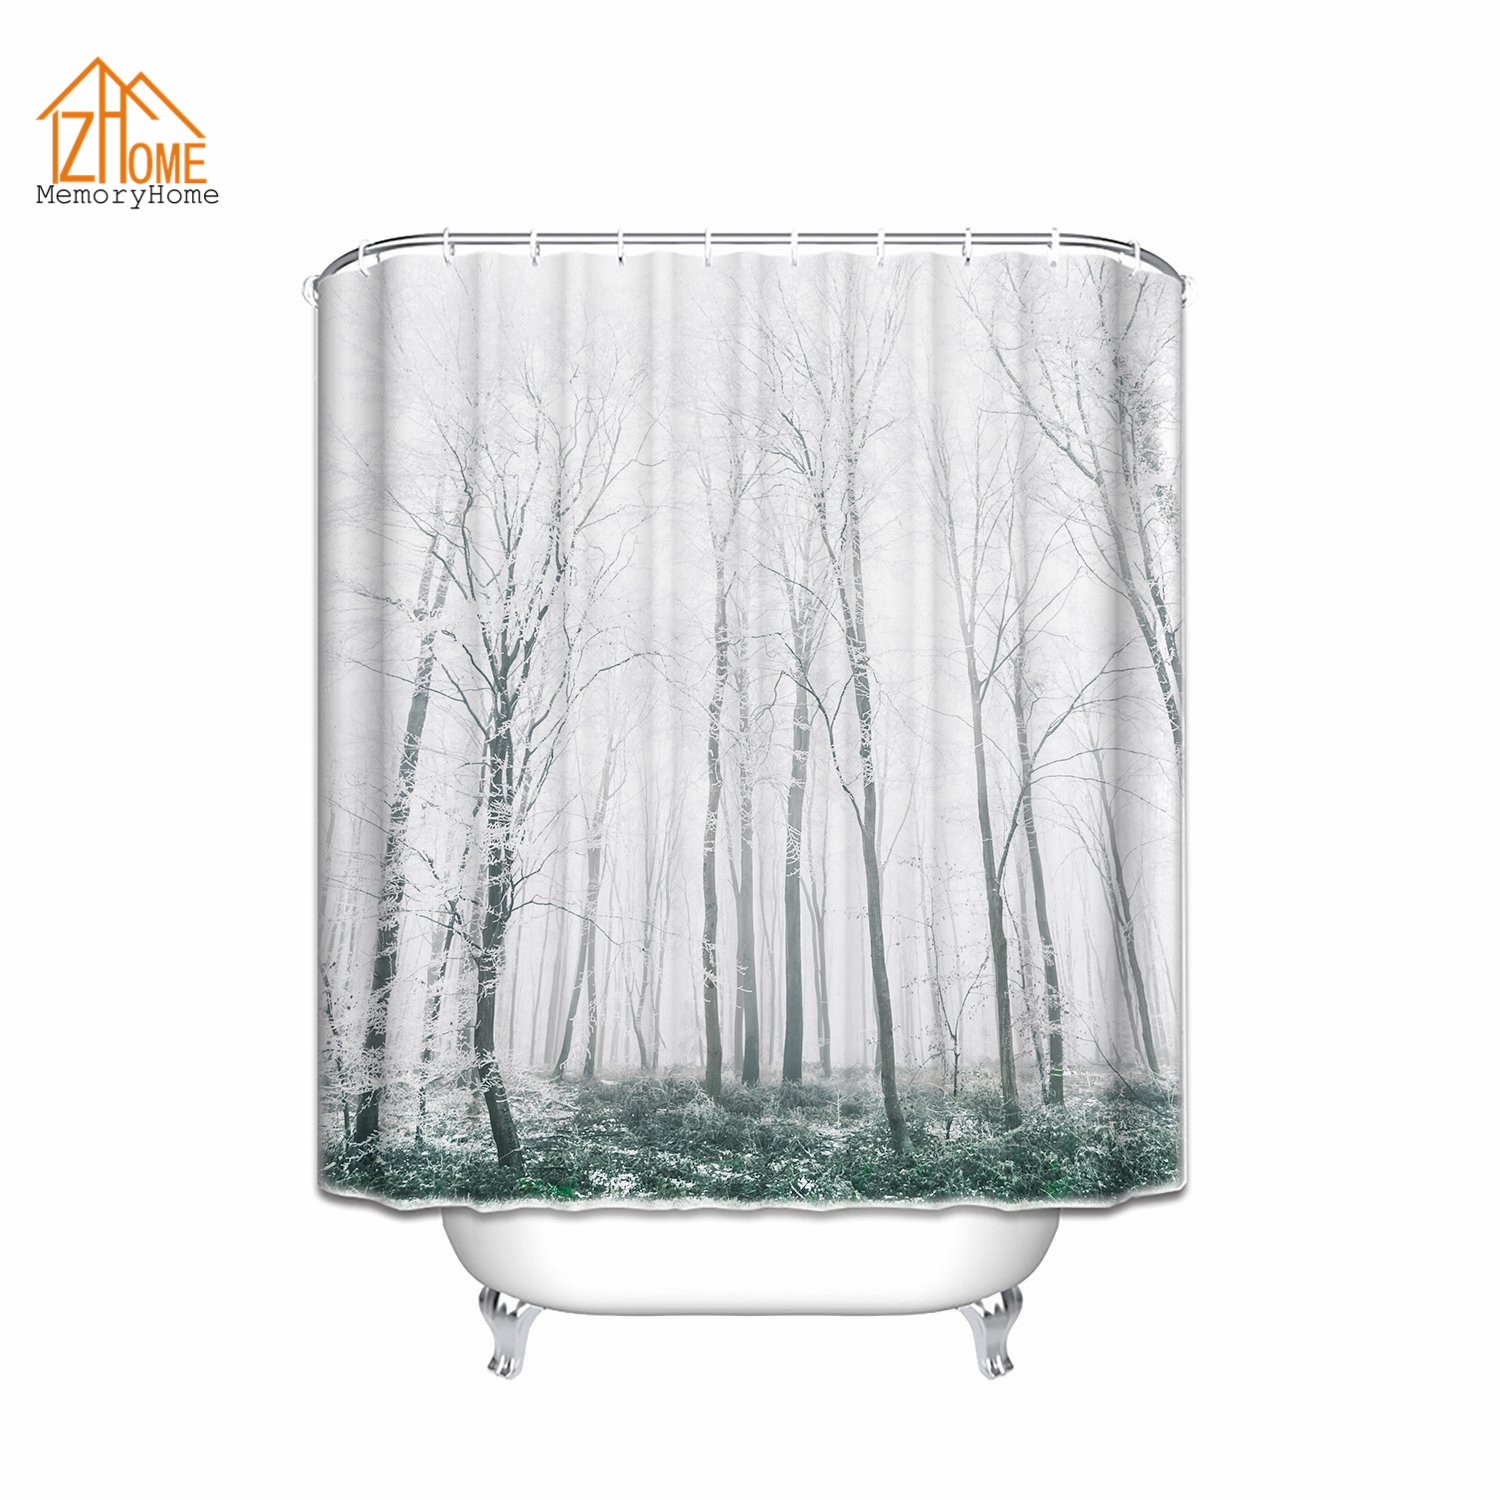 Winter shower curtain - Memory Home Winter Snow On Trees Waterproof Polyester Bathroom Curtains Winter Scene Heavy Snow Forest Fabric